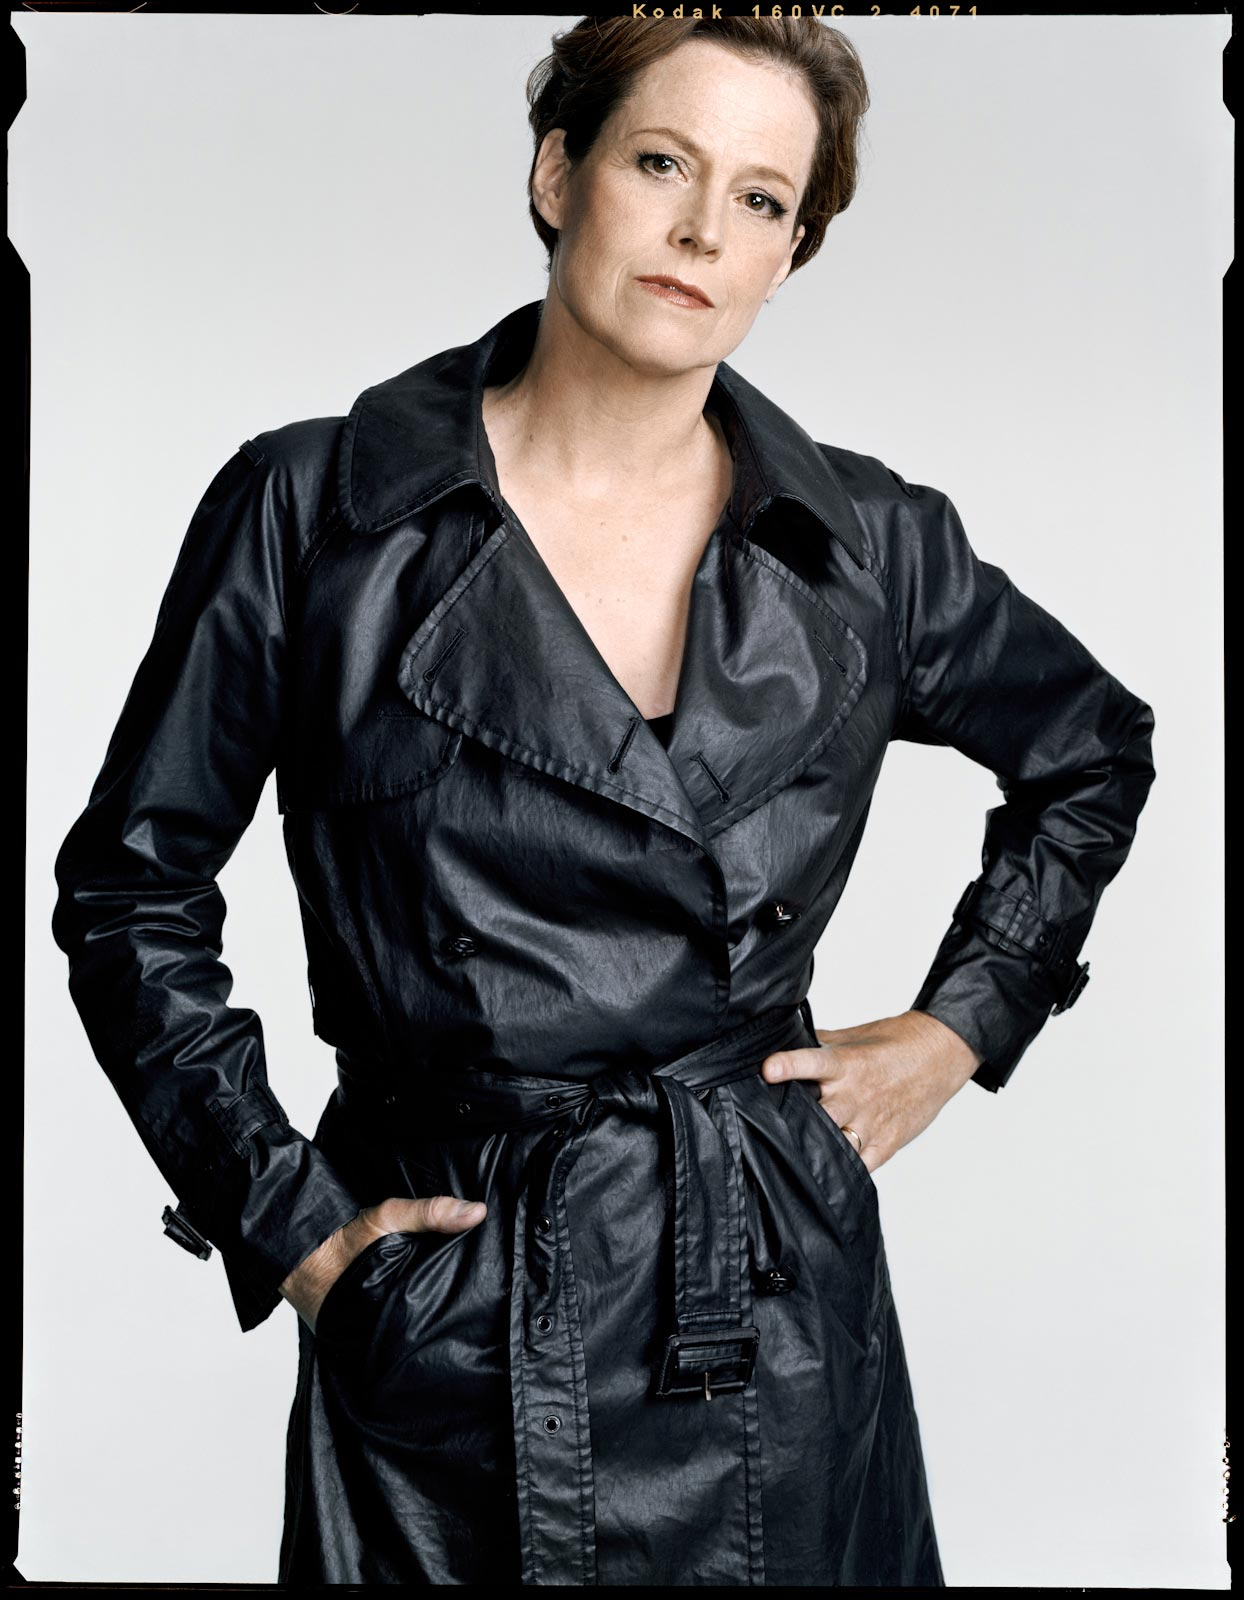 Sigourney Weaver - New York Magazine